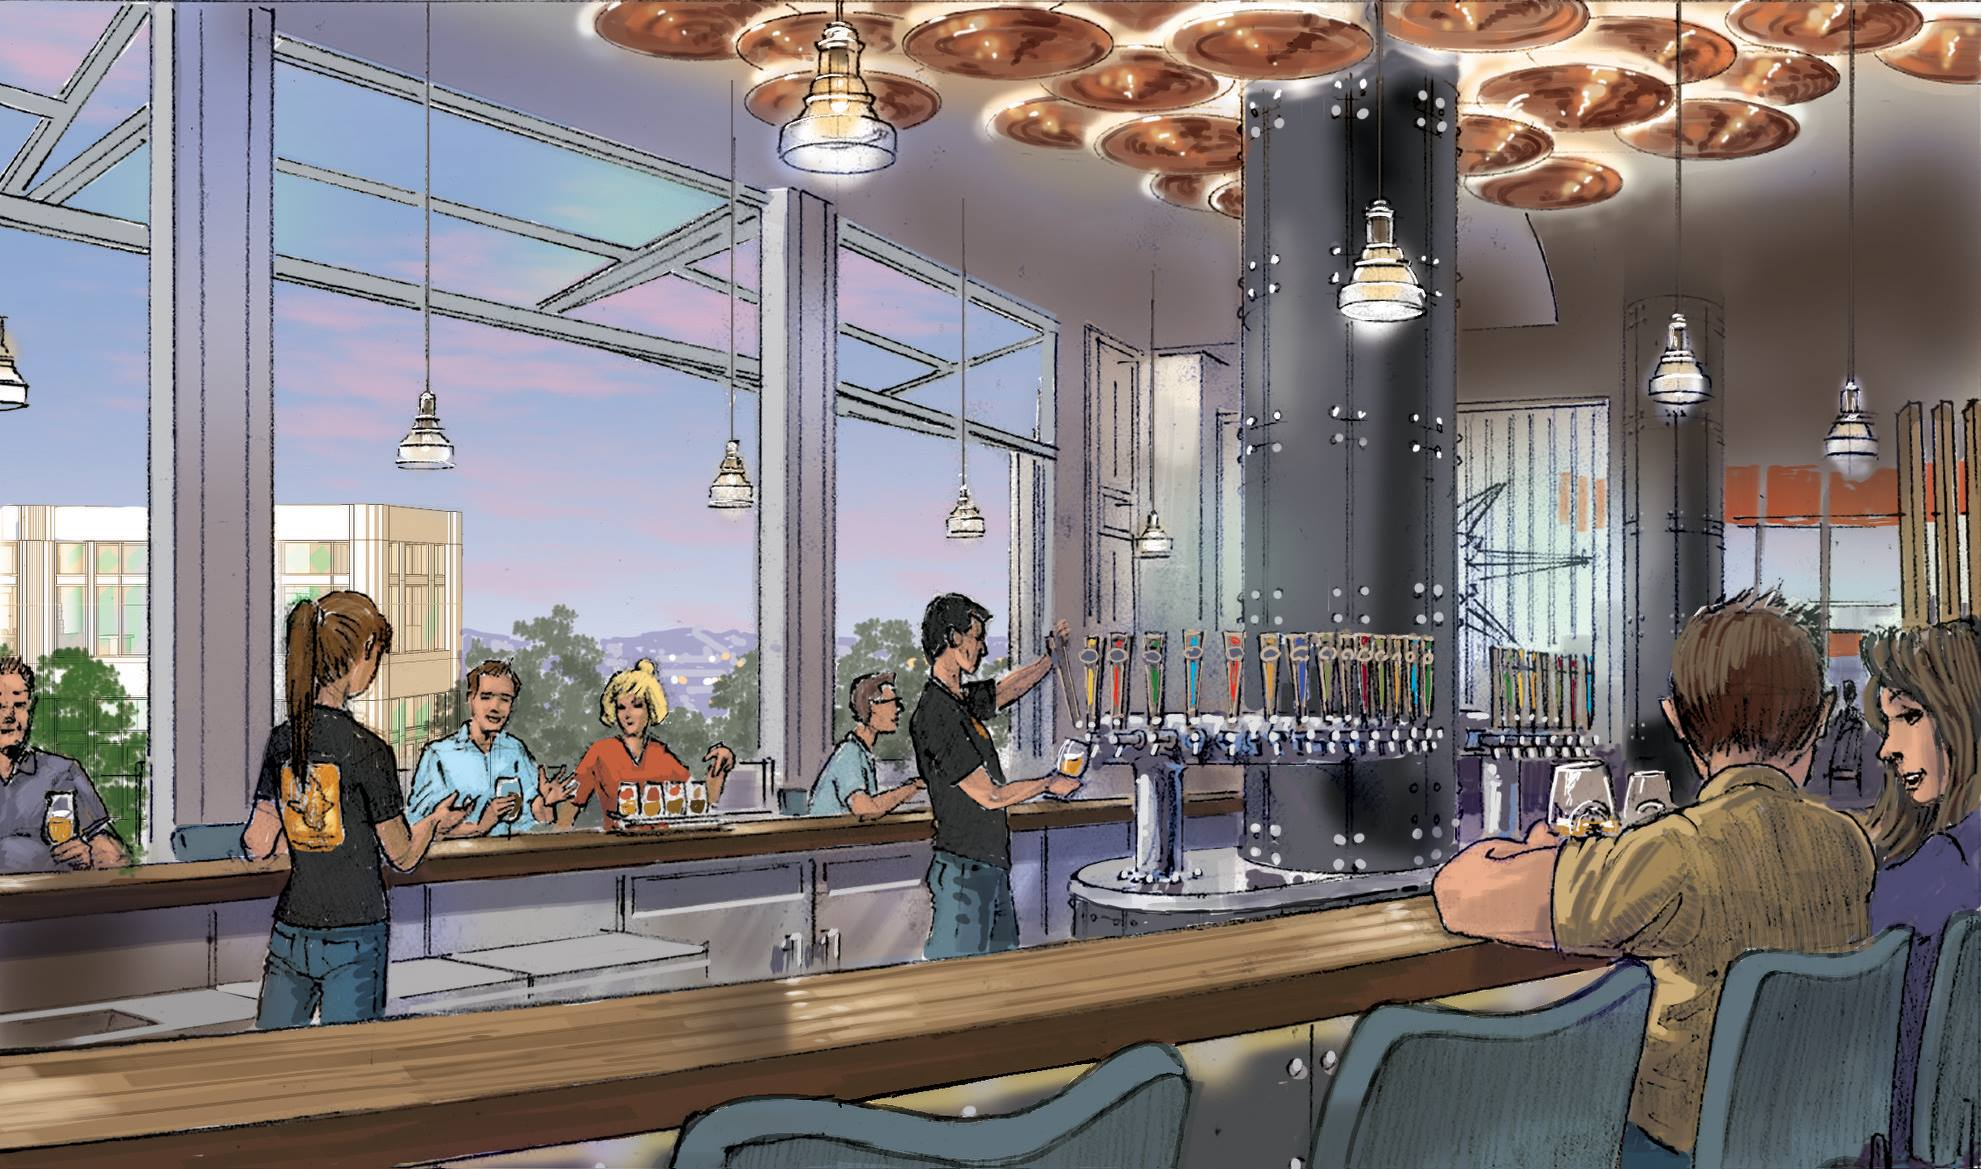 Ballast Point Brewing company downtown Disney drawing